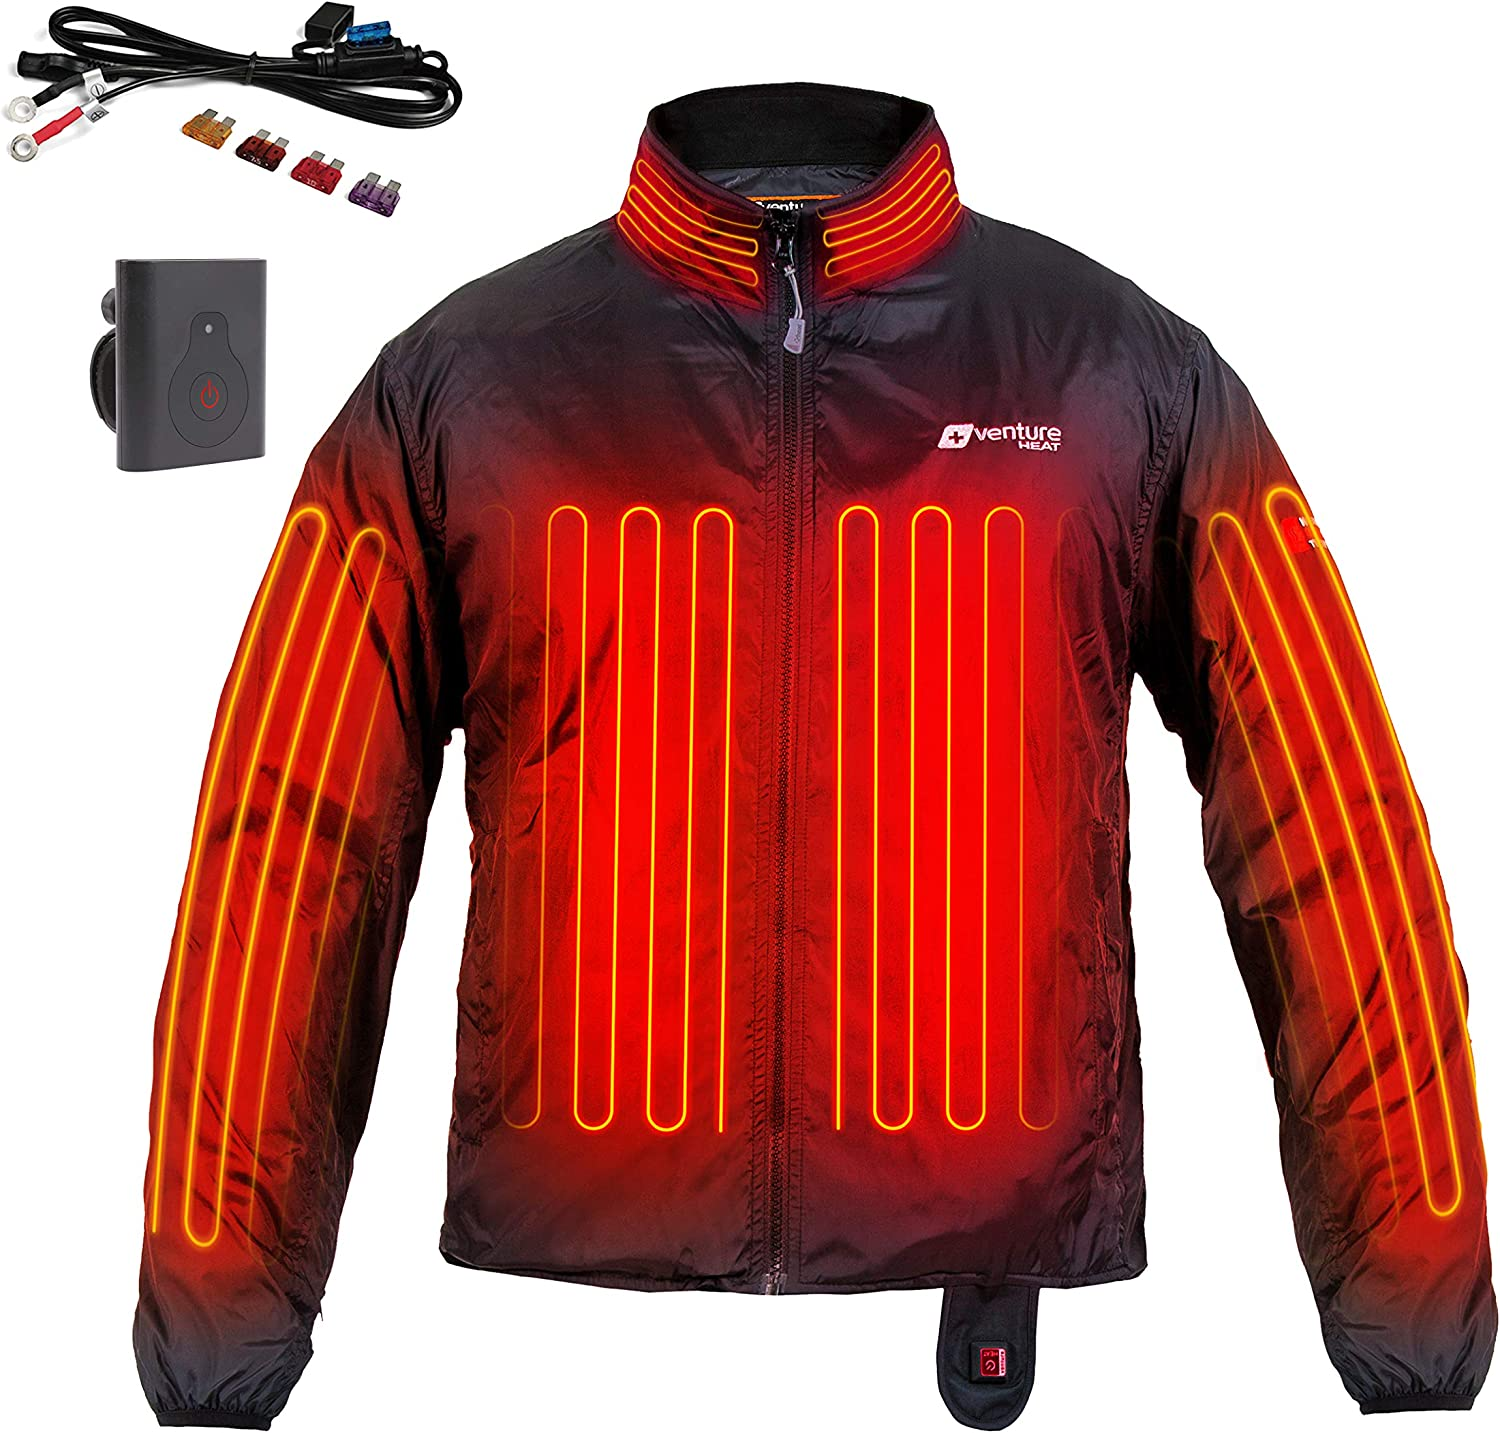 Amazon Com Venture Heat 12v Motorcycle Heated Jacket Liner With Wireless Remote 7 Heating Zones 75 Watt Deluxe Protective Gear Clothing